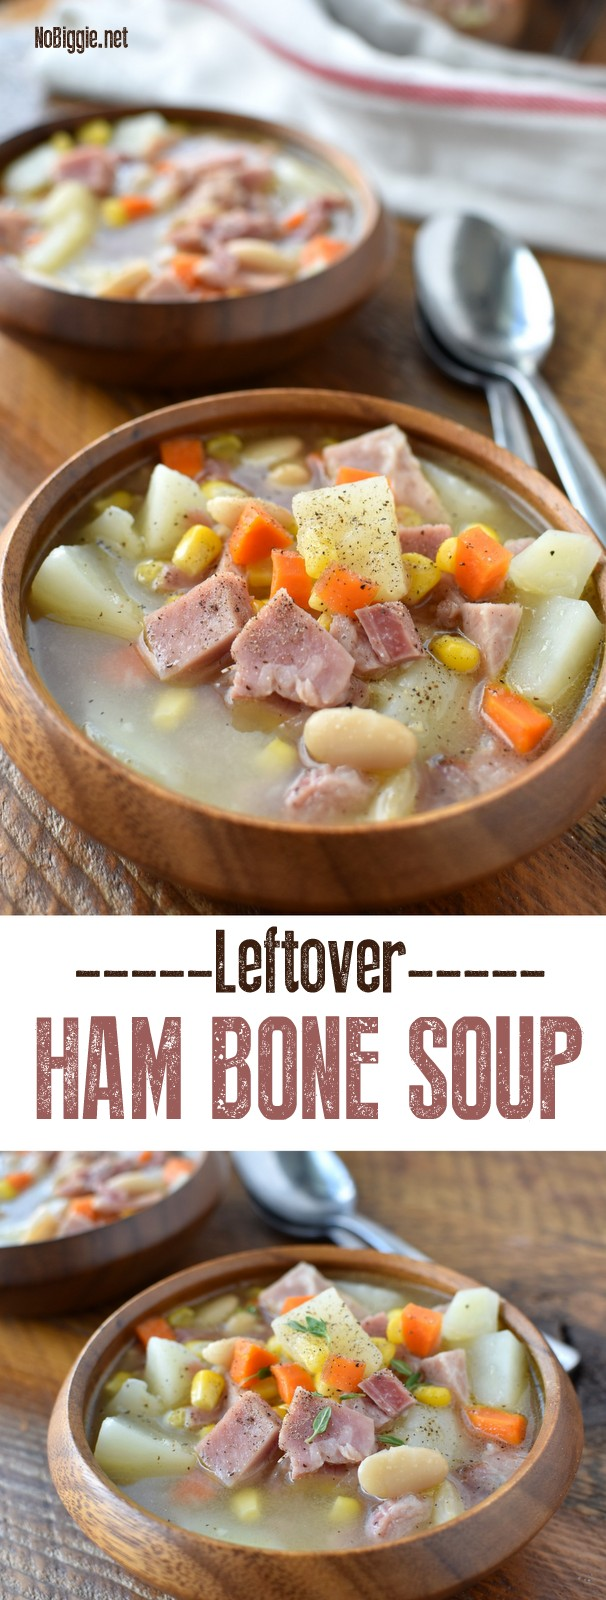 Leftover Ham Bone Soup is the perfect way to use up leftover holiday ham! Enjoy all the extra flavor from the ham bone. This soup is loaded! #hambonesoup #leftoverhamrecipes #soupison #nobiggierecipes #hamsoup #heartysoup